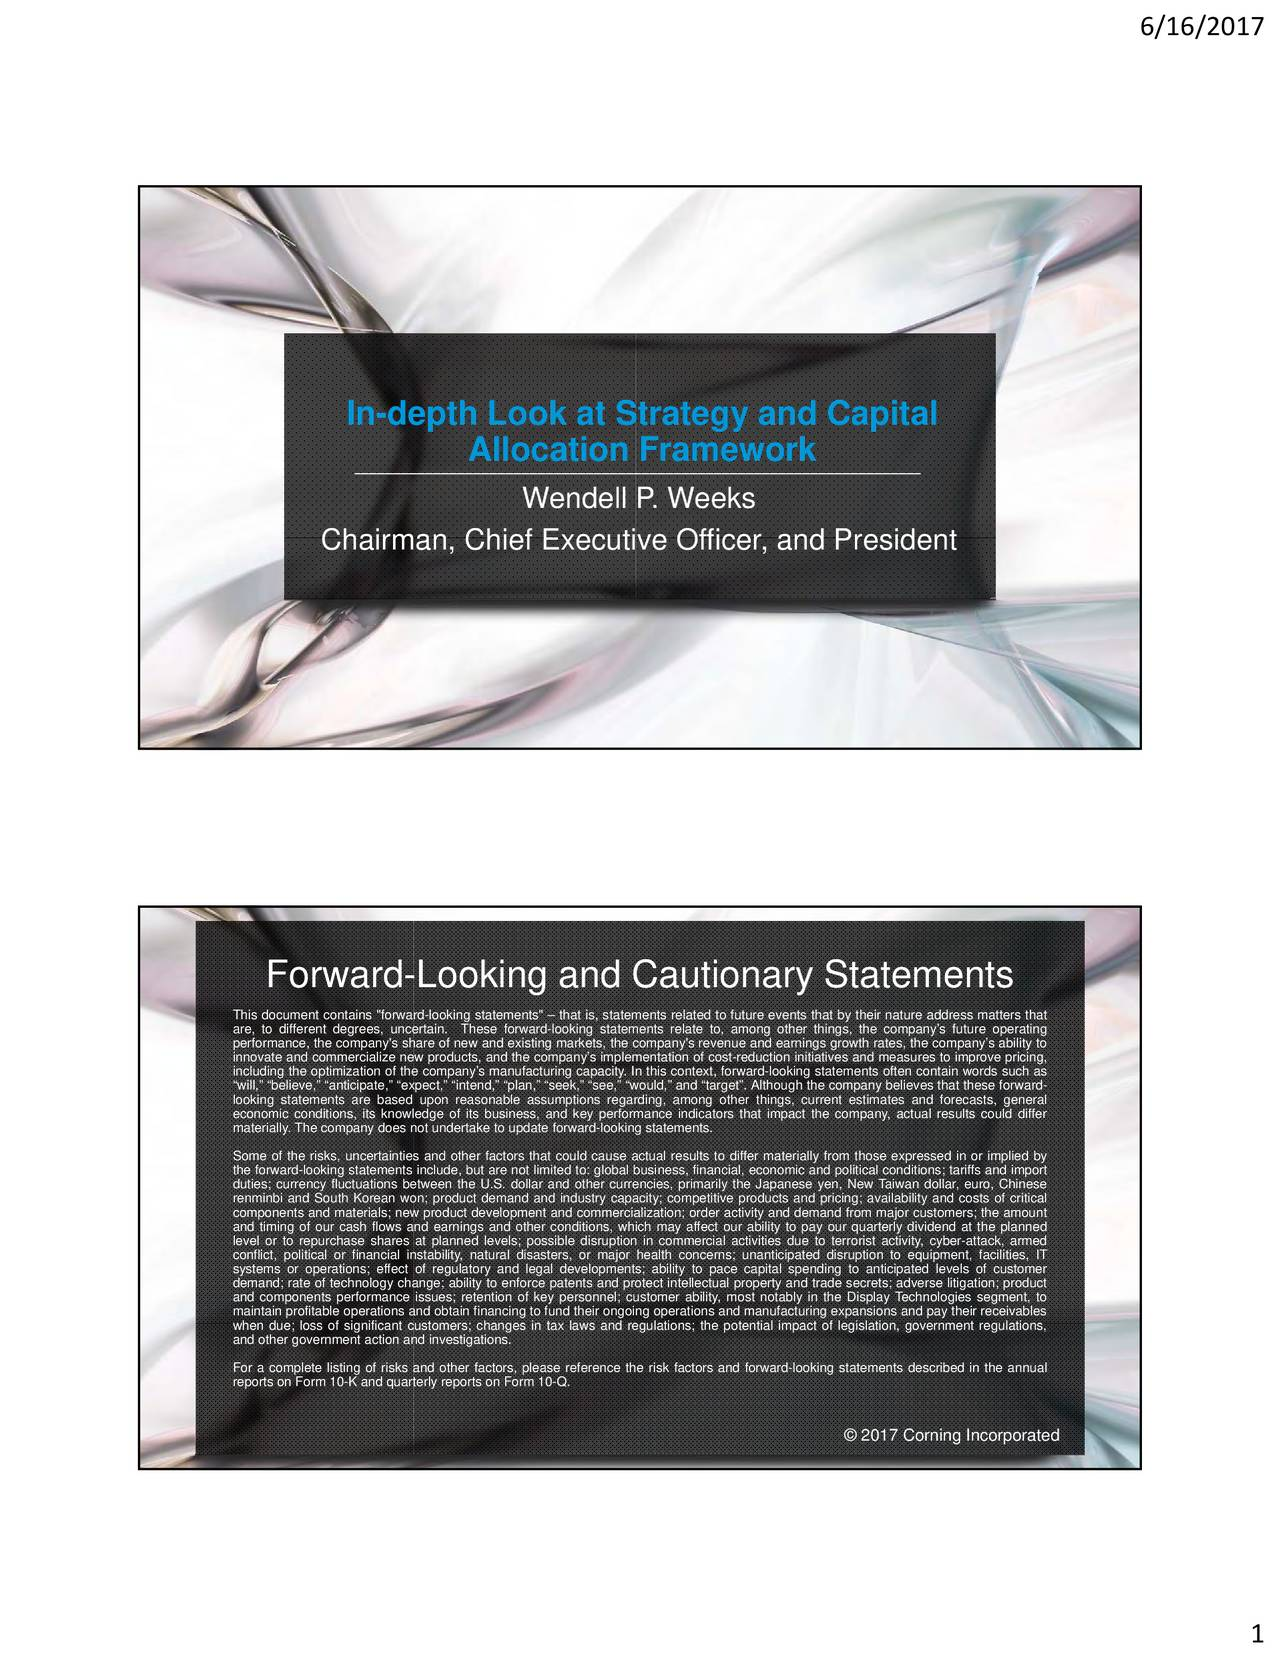 "In-depth Look at Strategy and Capital Allocation Framework Wendell P. Weeks Chairman, Chief Executive Officer, and President Forward-Looking and Cautionary Statements This document contains ""forward-looking statements""  that is, statements related to future events that by their nature address matters that are, to different degrees, uncThese forward-looking statements relate to, among other things, the companys future operating performance, the company's share of new and existing markets, the company's revenue and earnings growth rates, the companys ability to innovate and commercialize new products, and the companys implementation of cost-reduction initiatives and measures to improve pricing, will, believe, anticipate, expect, intend, plan, seek, see, would, and target. Although the company believes that these forward- looking statements are based upon reasonable assumptions regarding, among other things, current estimates and forecasts, general economic conditions, its knowledge of its business, and key performance indicators that impact the company, actual results could differ materially. The company does not undertake to update forward-looking statements. Some of the risks, uncertainties and other factors that could cause actual results to differ materially from those expressed in or implied by duties; currency fluctuations between the U.S. dollar and other currencies, primarily the Japanese yen, New Taiwan dollar, euro, Chinesend import renminbi and South Korean won; product demand and industry capacity; competitive products and pricing; availability and costs of critical components and materials; new product development and commercialization; order activity and demand from major customers; the amount and timing of our cash flows and earnings and other conditions, which may affect our ability to pay our quarterly dividend at the planned level or to repurchase shares at planned levels; possible disruption in commercial activities due to terrorist activity, cyber-attack, armed conflict, political or financial instability, natural disasters, or major health concerns; unanticipated disruption to equipment, facilities, IT systems or operations; effect of regulatory and legal developments; ability to pace capital spending to anticipated levels of customer and components performance issues; retention of key personnel; customer ability, most notably in the Display Technologies segment, to; product maintain profitable operations and obtain financing to fund their ongoing operations and manufacturing expansions and pay their receivables when due; loss of significant customers; changes in tax laws and regulations; the potential impact of legislation, government regulations, and other government action and investigations. For a complete listing of risks and other factors, please reference the risk factors and forward-looking statements described in the annual reports on Form 10-K and quarterly reports on Form 10-Q. 2017 Corning Incorporated 1"